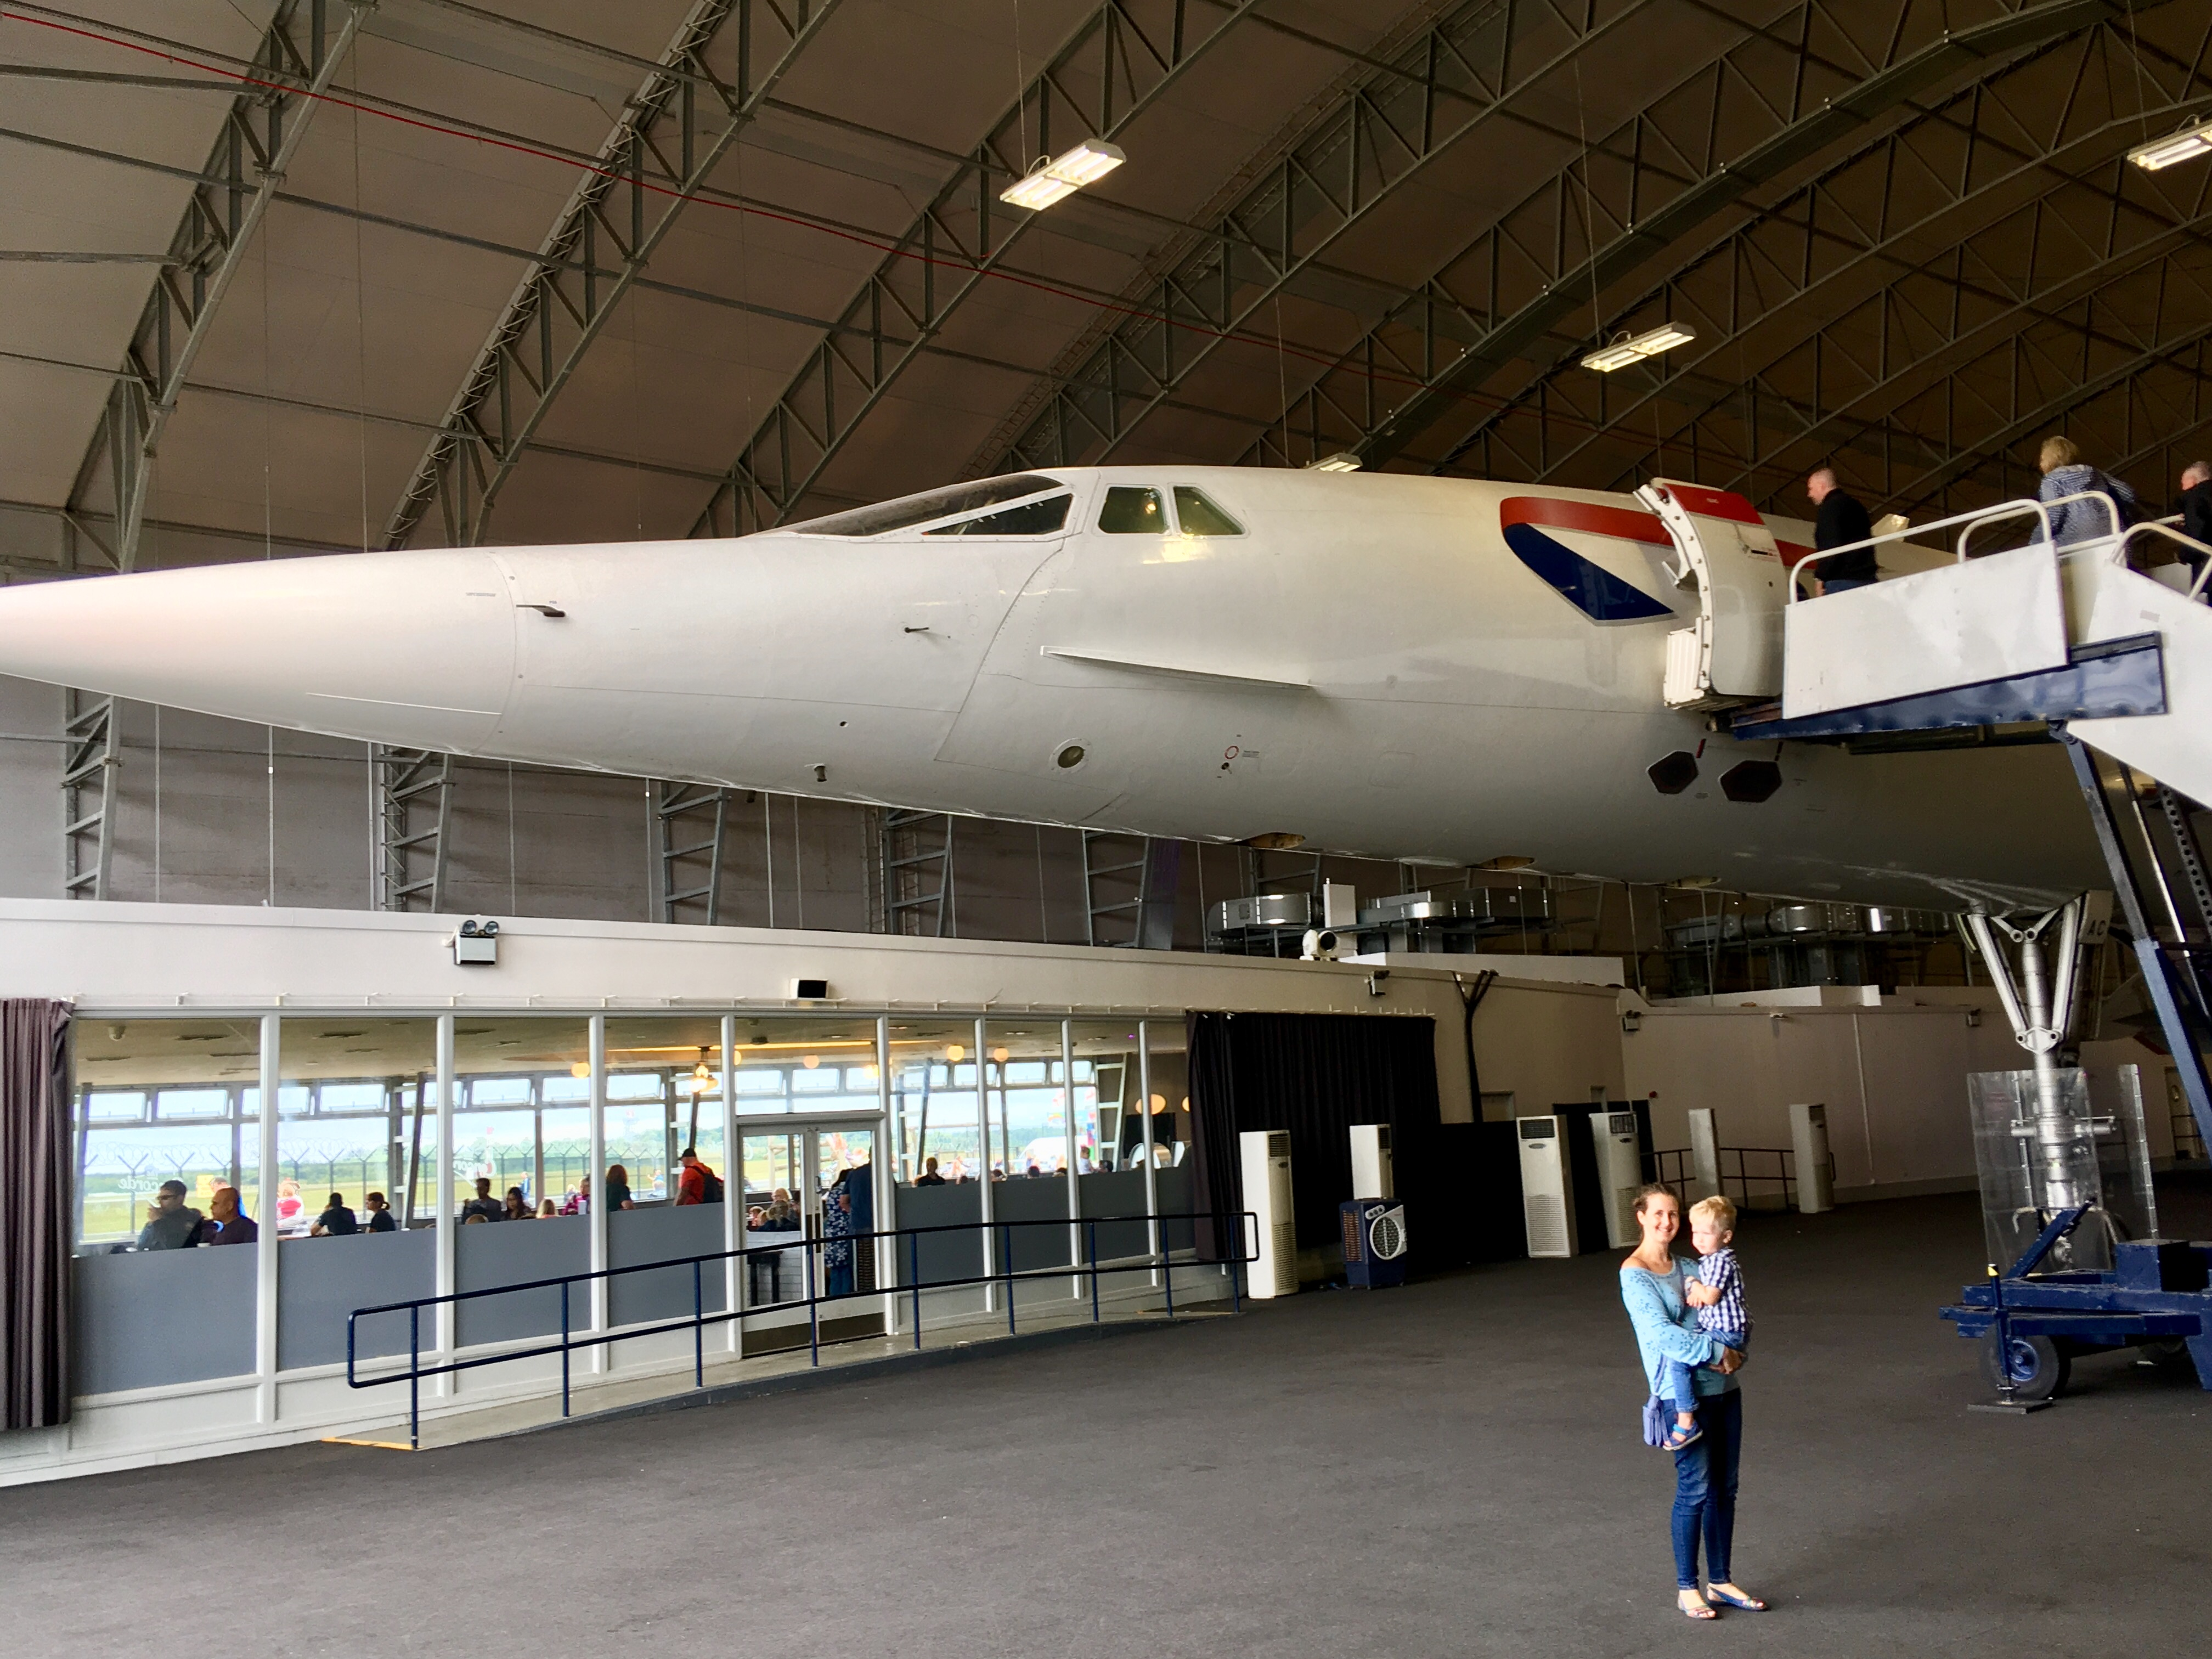 Manchester Runway Visitor Park review. Me and Lucas stood below the Concorde